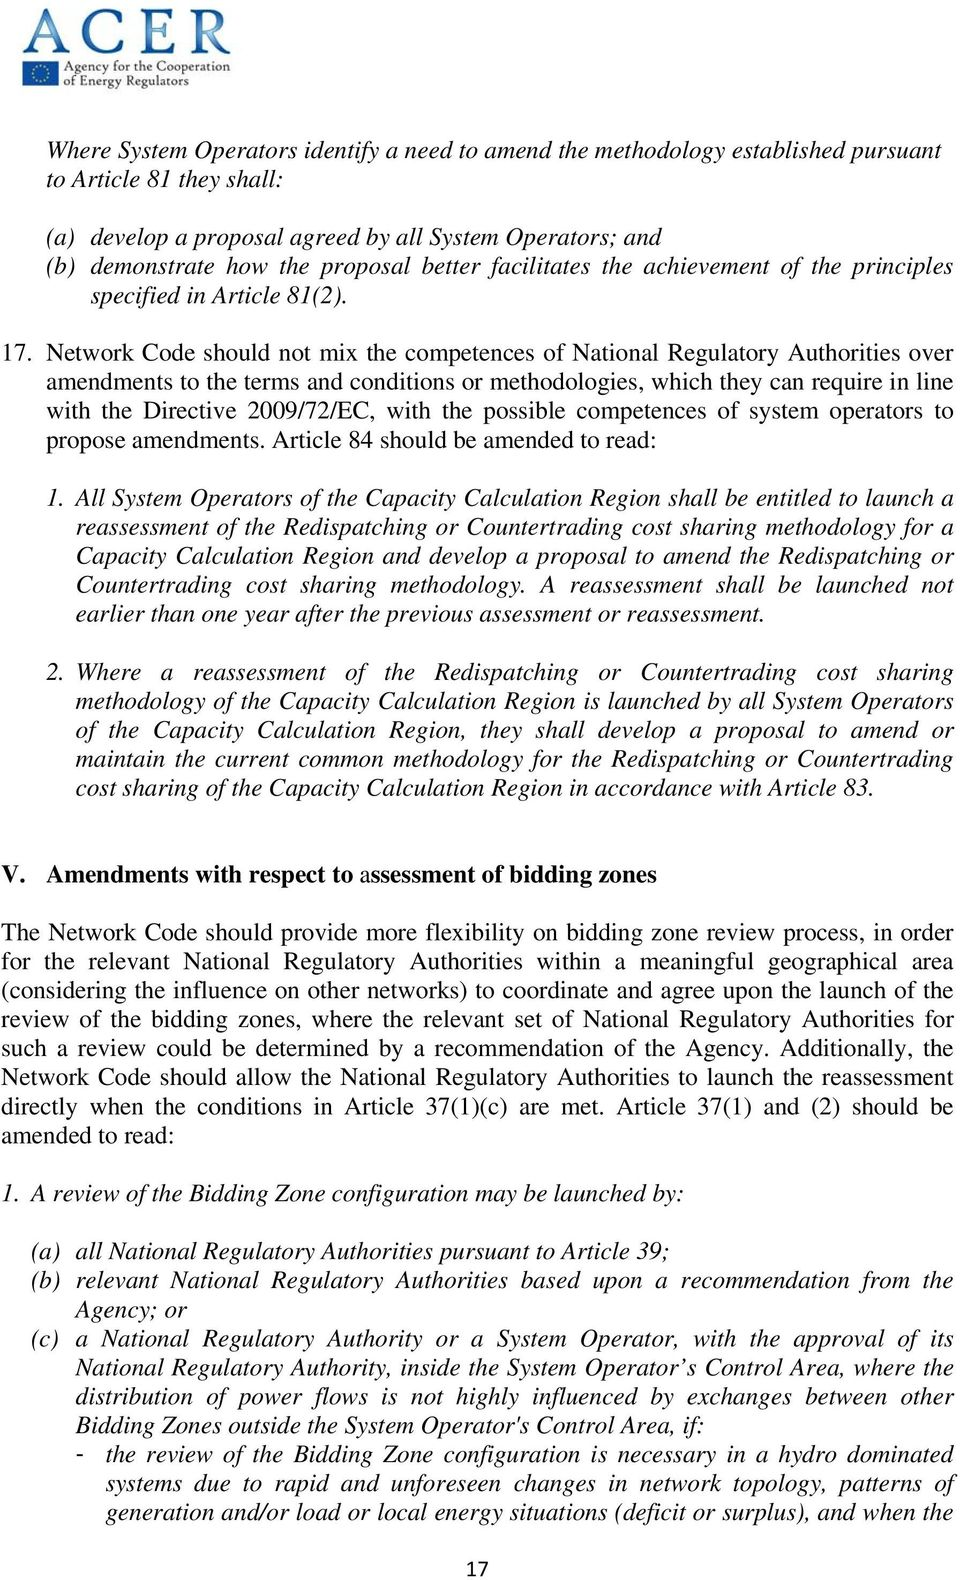 Network Code should not mix the competences of National Regulatory Authorities over amendments to the terms and conditions or methodologies, which they can require in line with the Directive